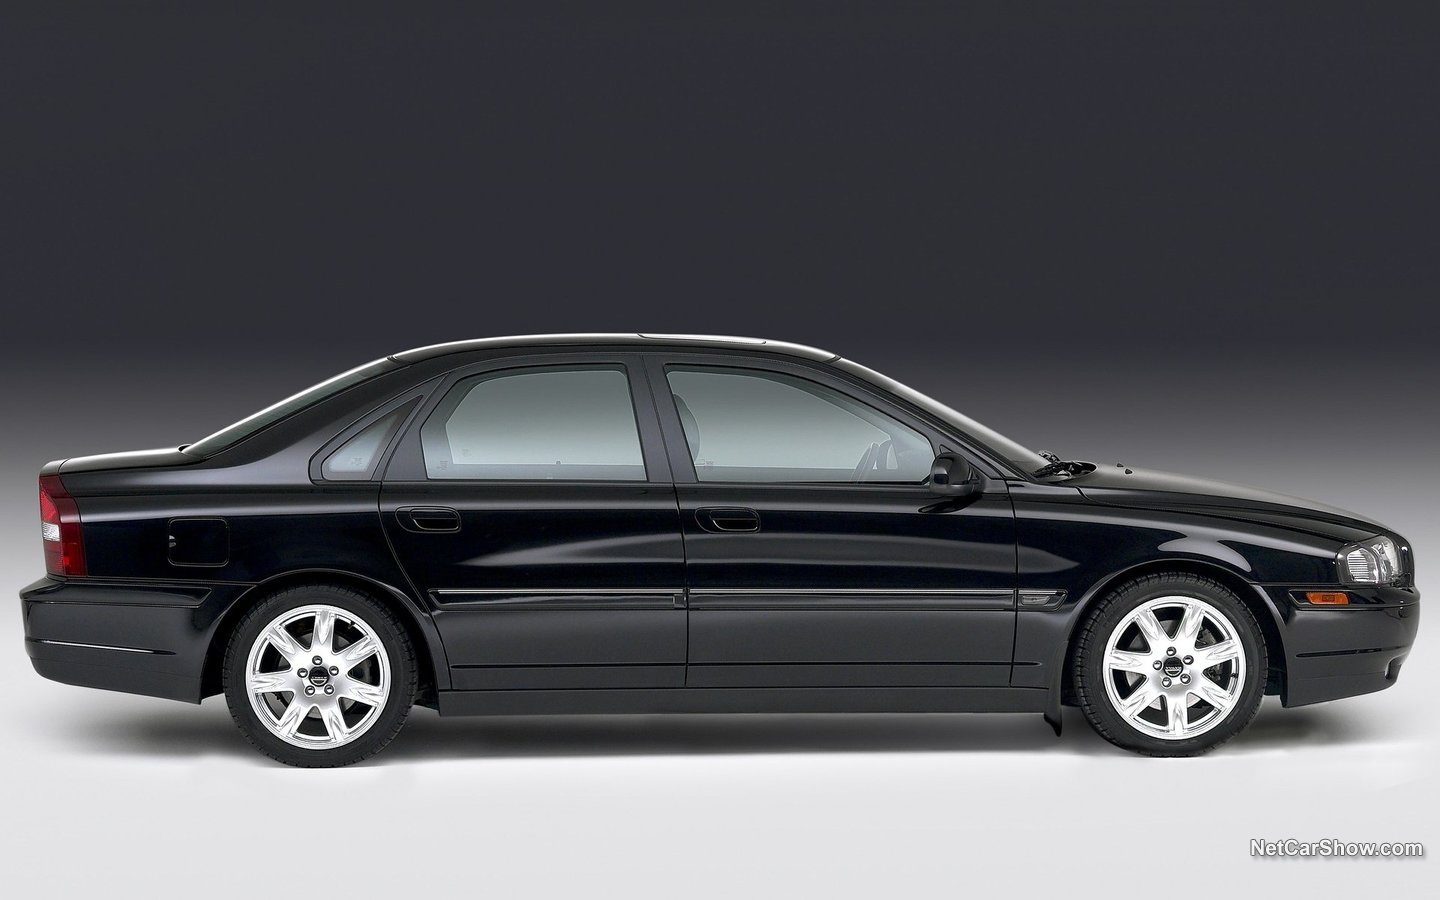 Volvo S80 2001 704a4d20